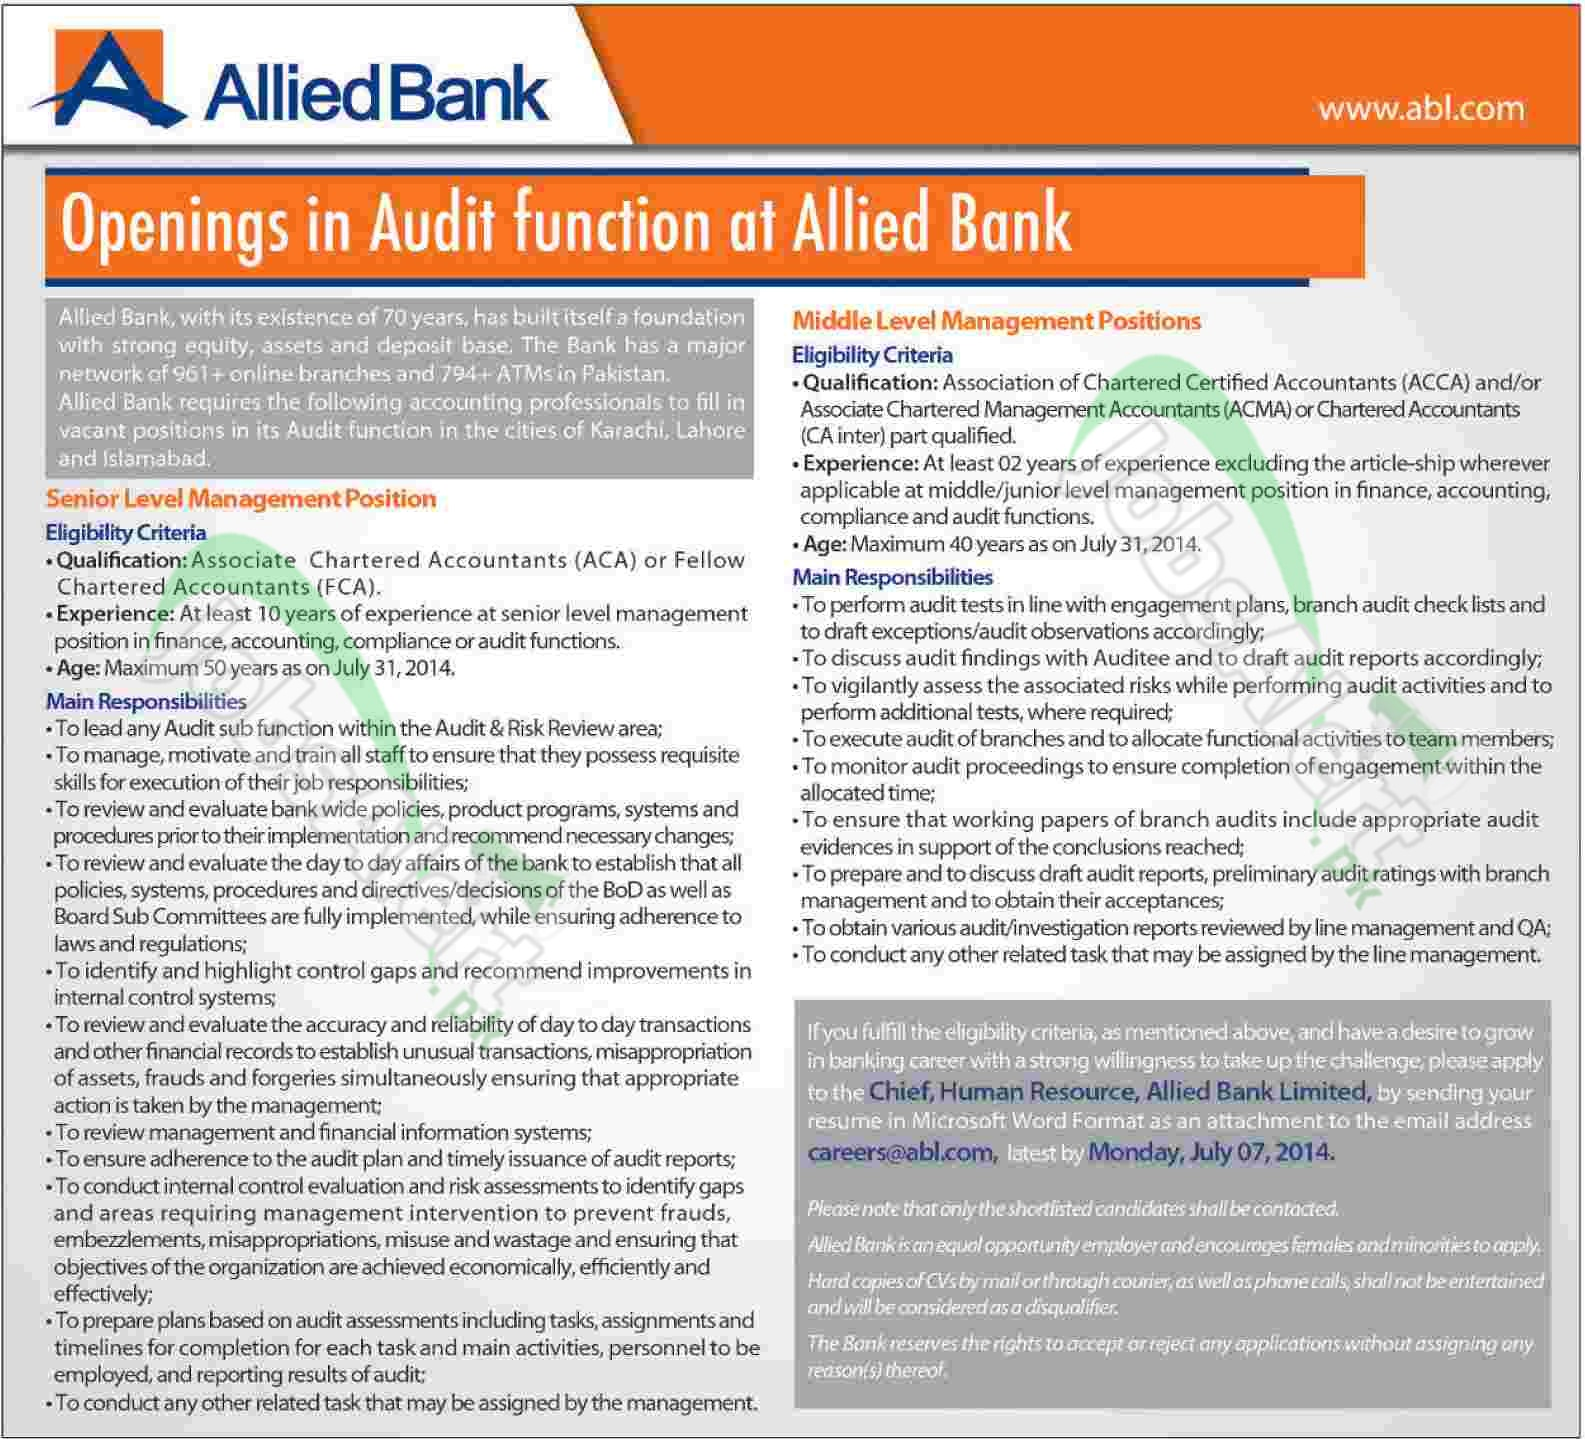 Allied-Bank-Limited Job Application Form Nust on part time, free generic, blank generic,